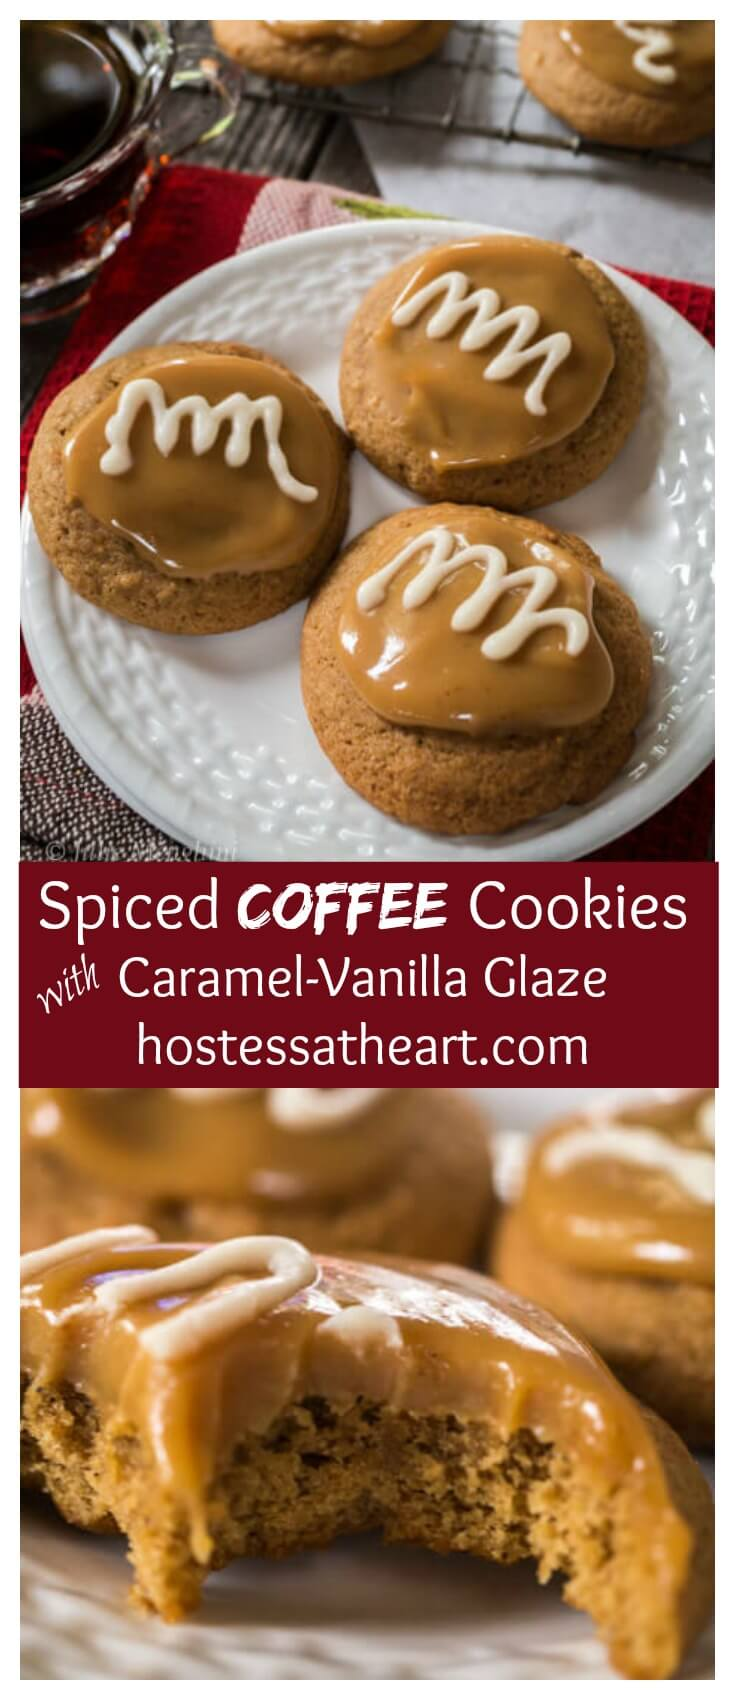 Spiced Coffee Cookies With Caramel Vanilla Glaze - A warm spiced soft cookie topped with gooey caramel and a vanilla glaze swirl. These cookies taste like a delicious coffee latte.   HostessAtHeart.com #cookies, #cookie #baking, #dessertrecipes, #cookierecipe